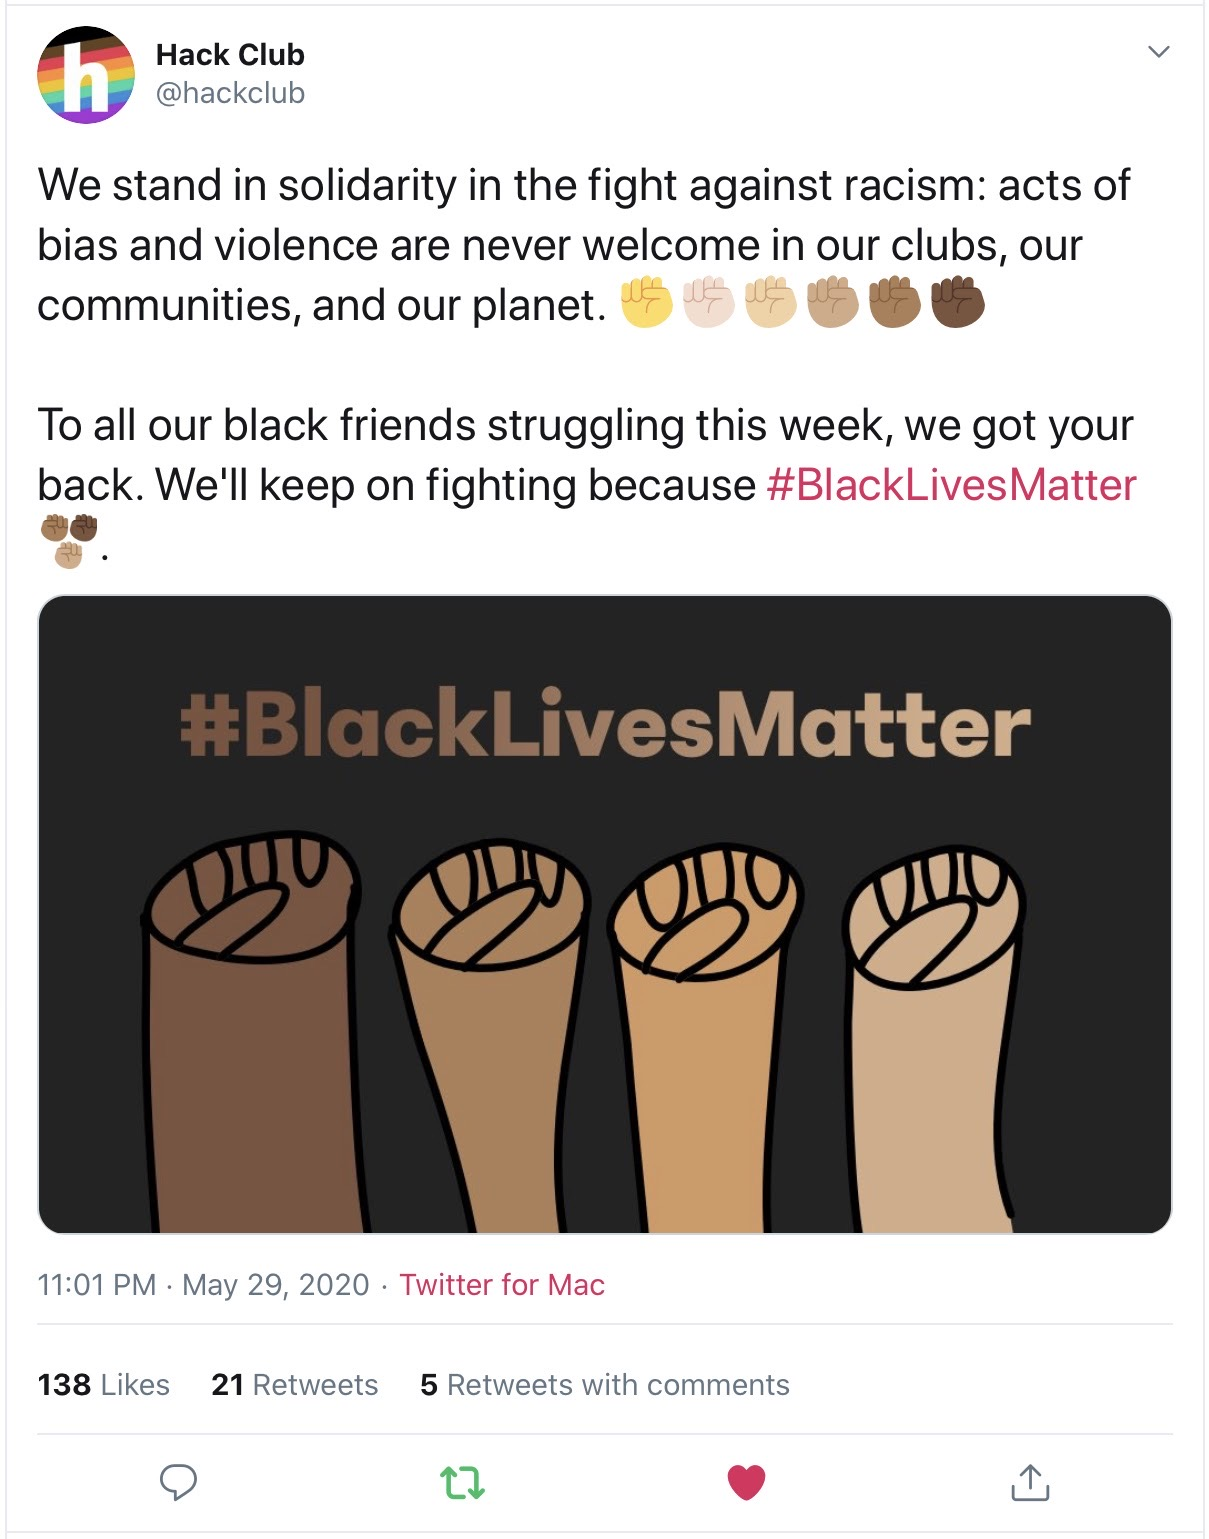 Our tweet about Black Lives Matter